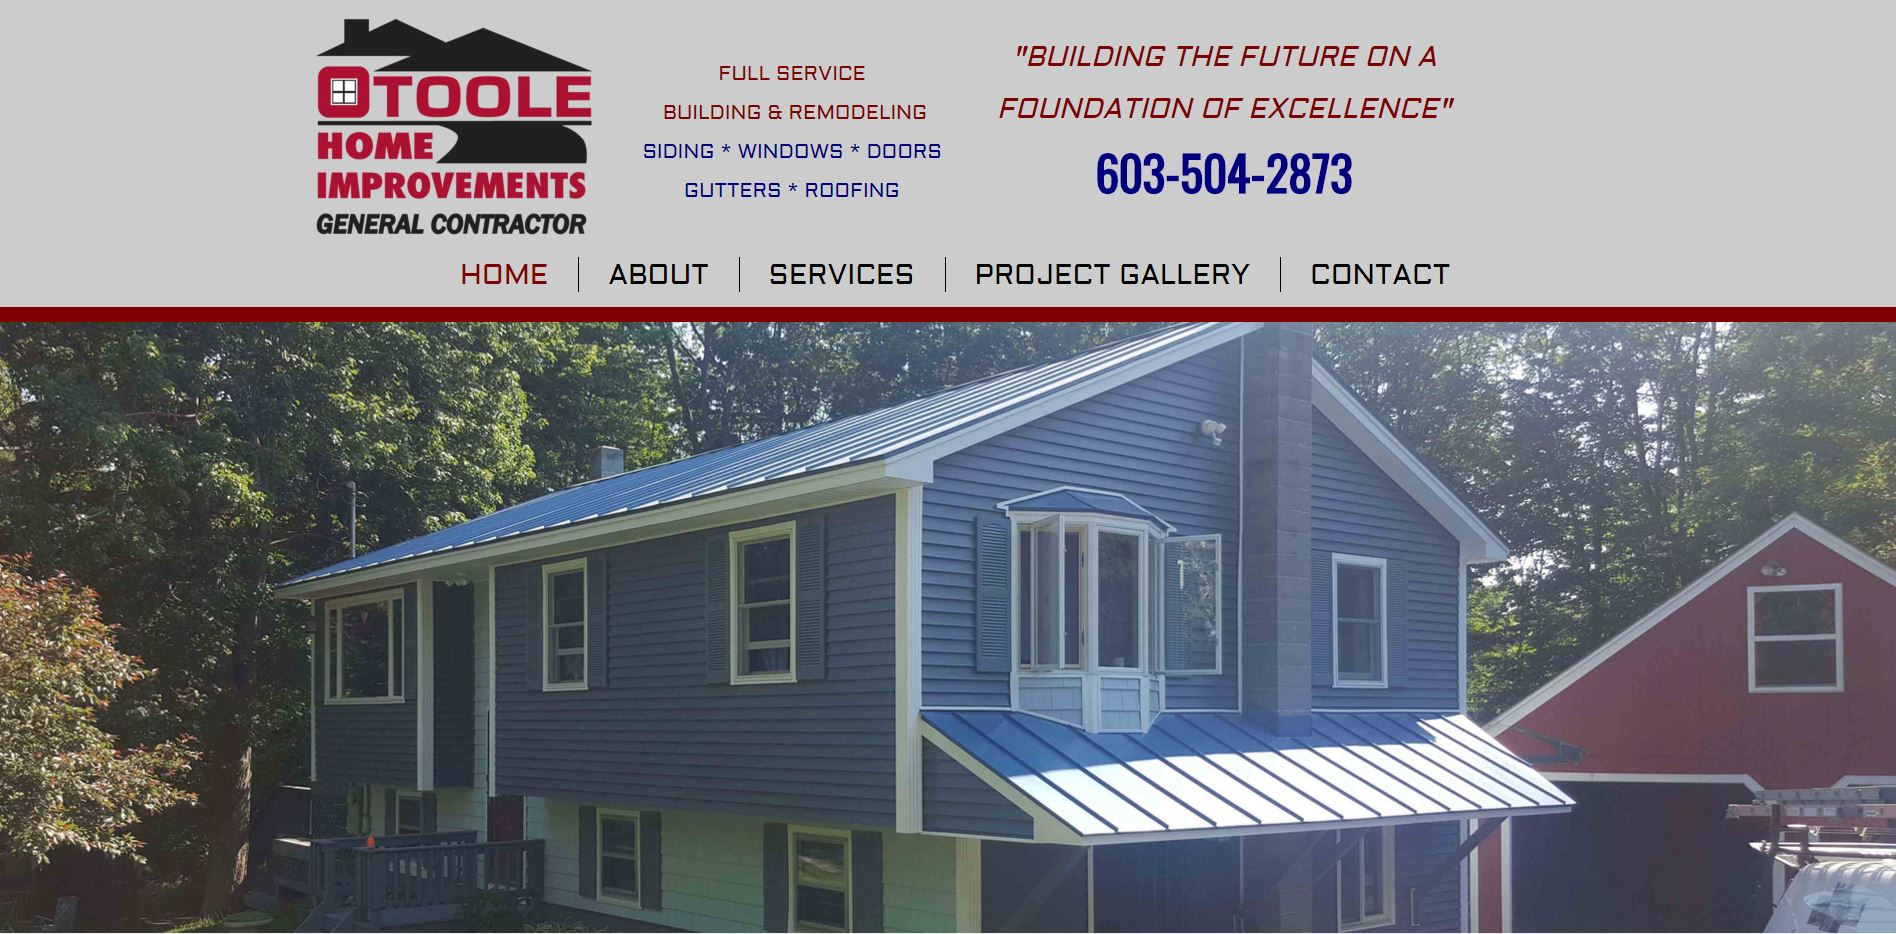 O'toole Home Improvements Website